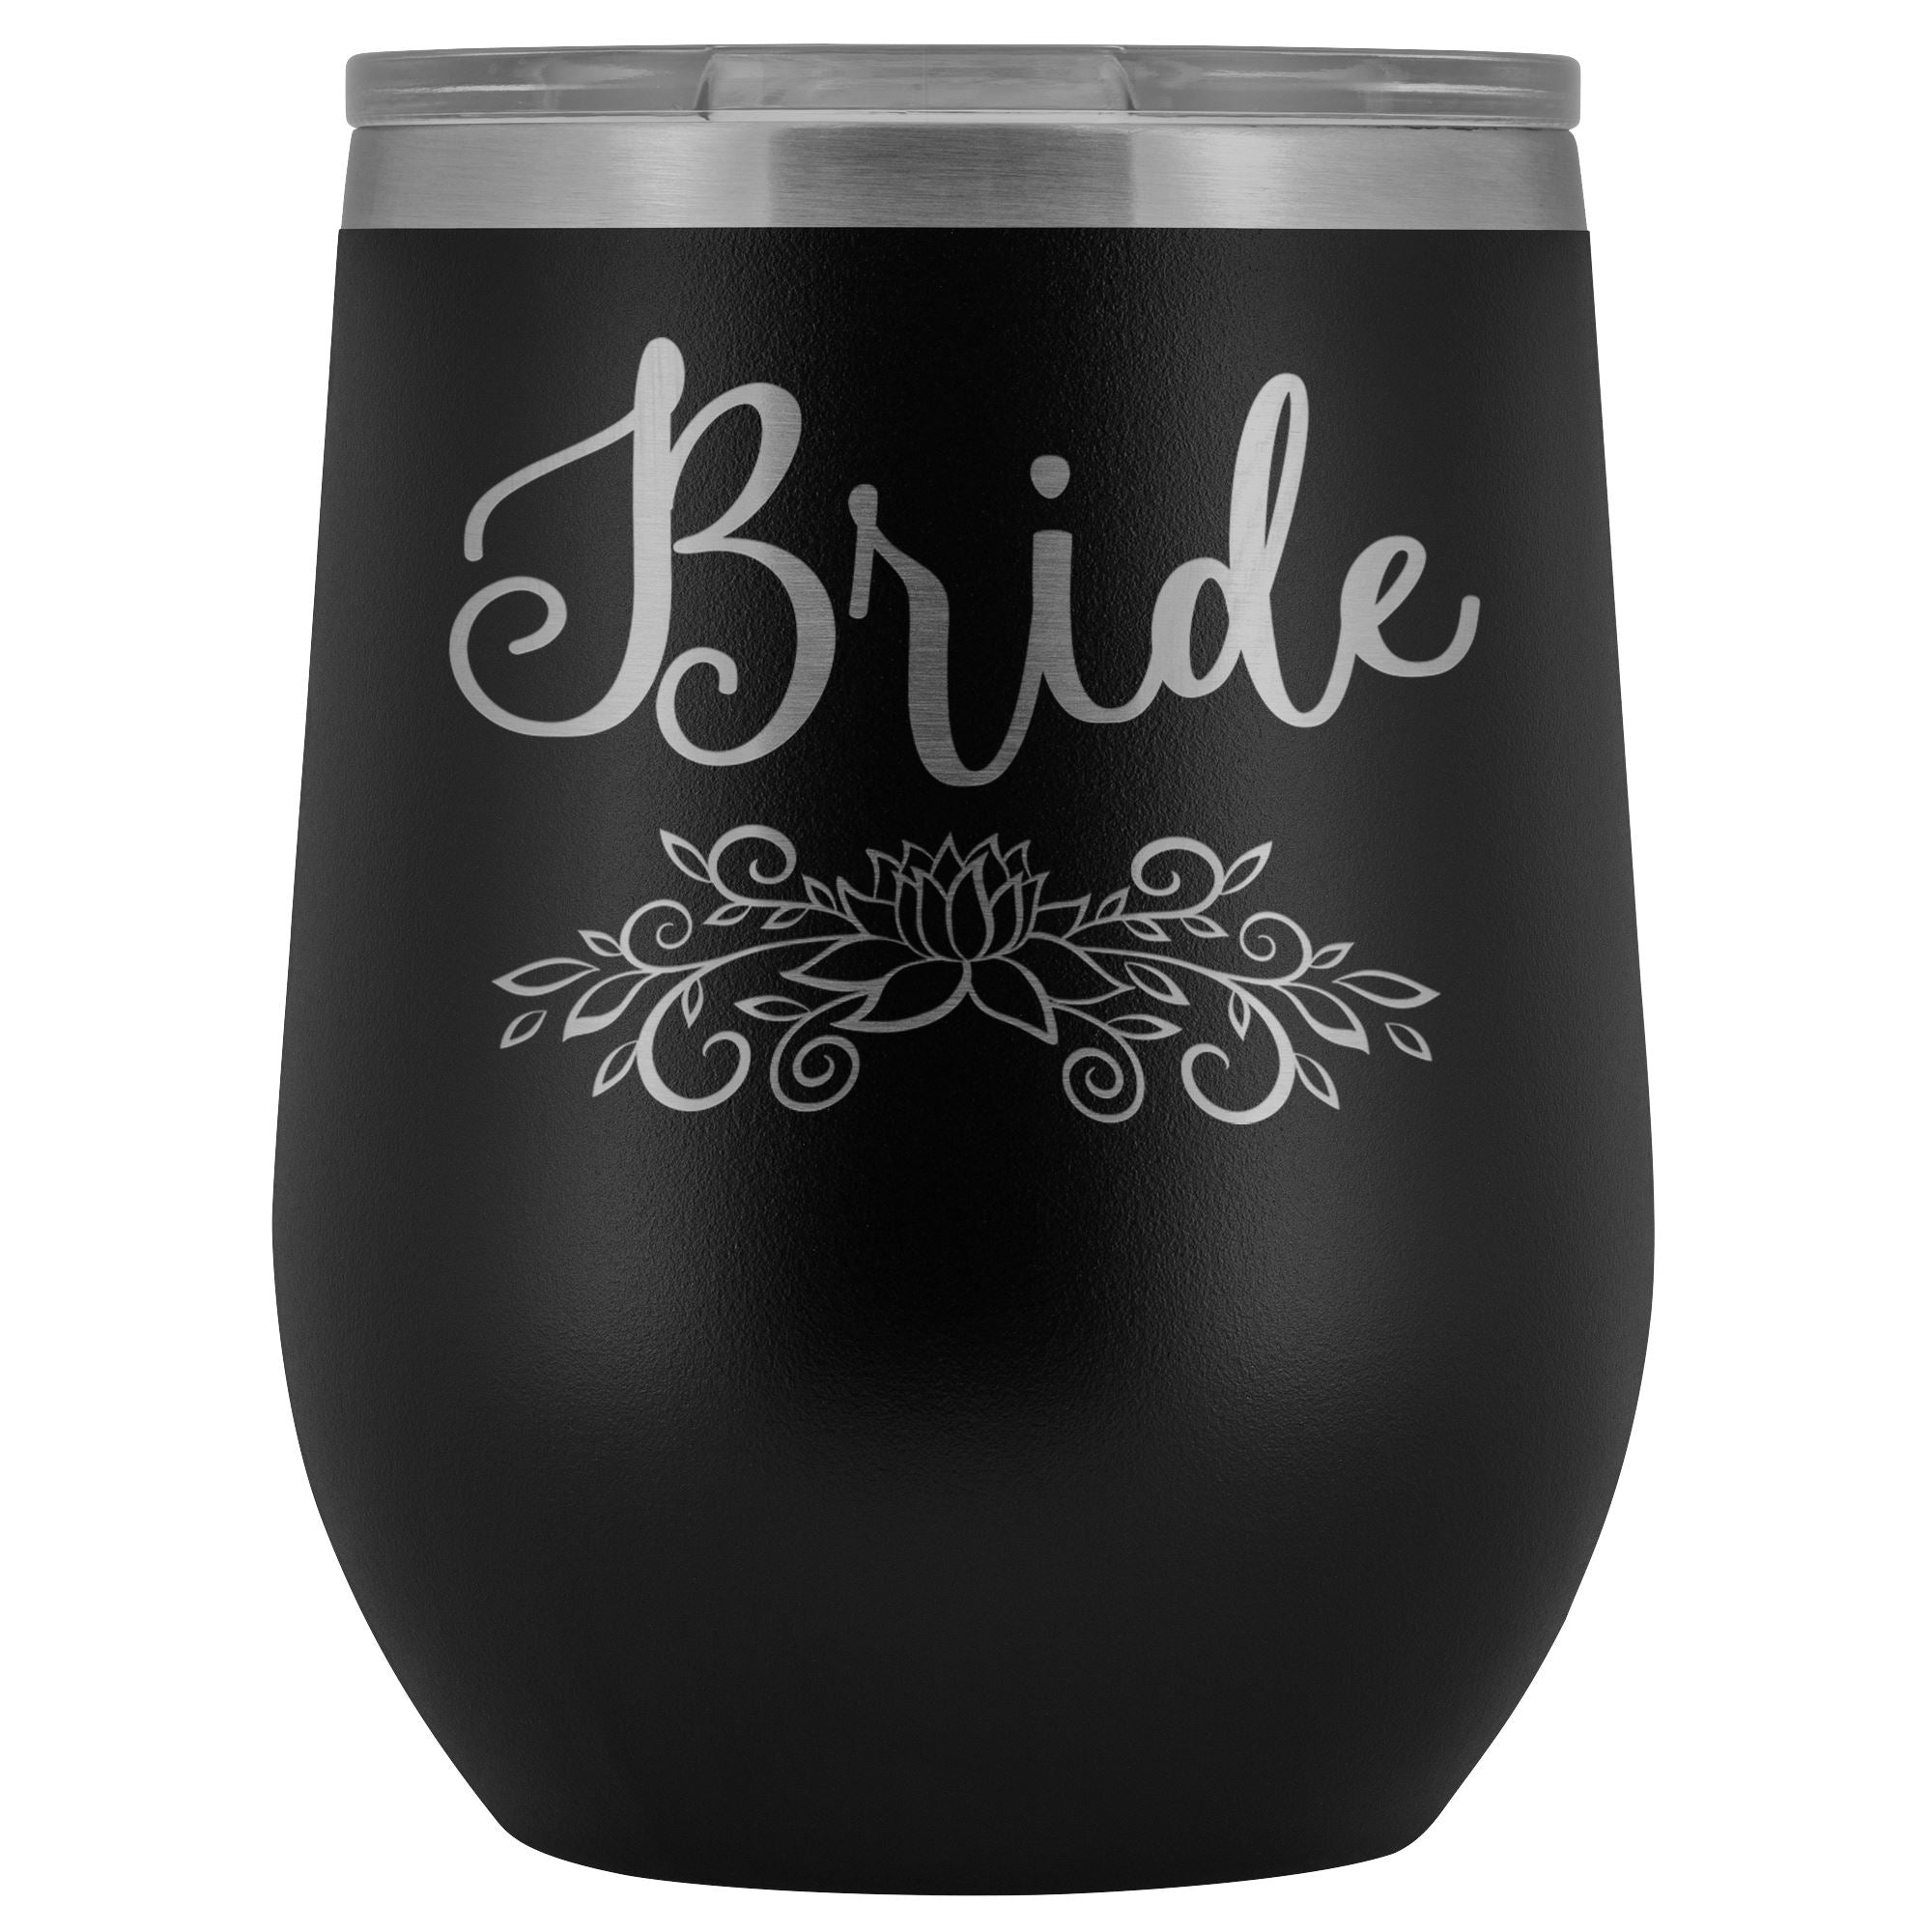 For the Bride • Engraved 12oz. Wine Tumbler Wine Tumbler teelaunch Black